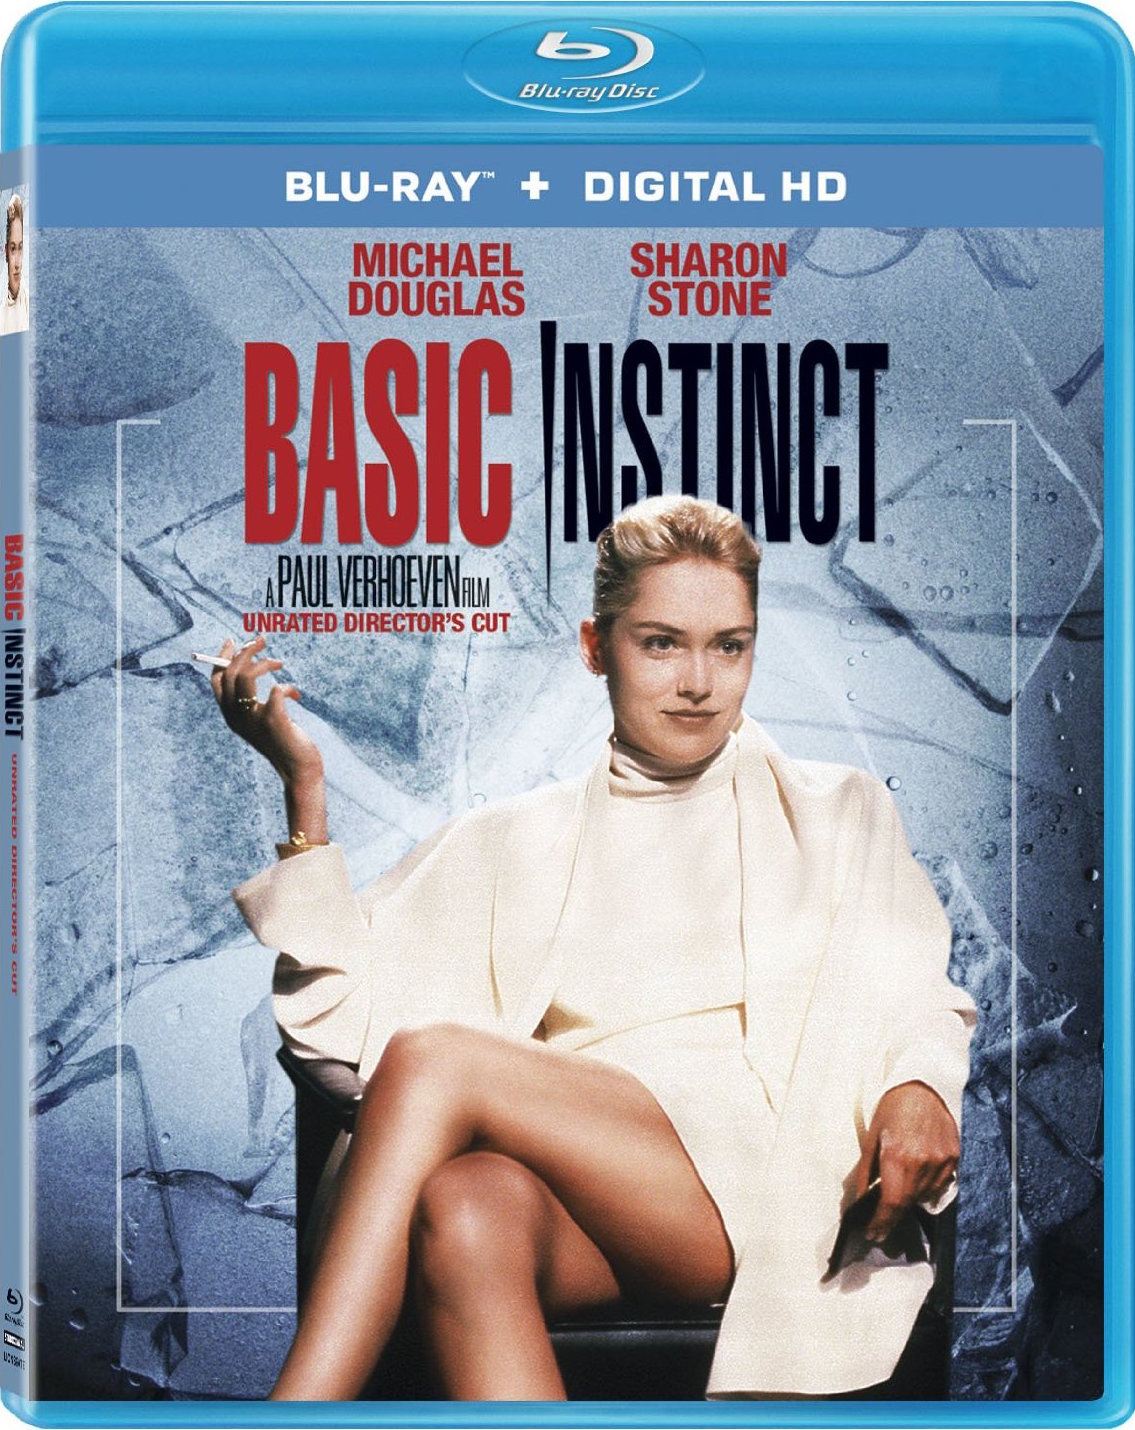 Animal Instincts 1992 Video basic instinct wallpapers, movie, hq basic instinct pictures